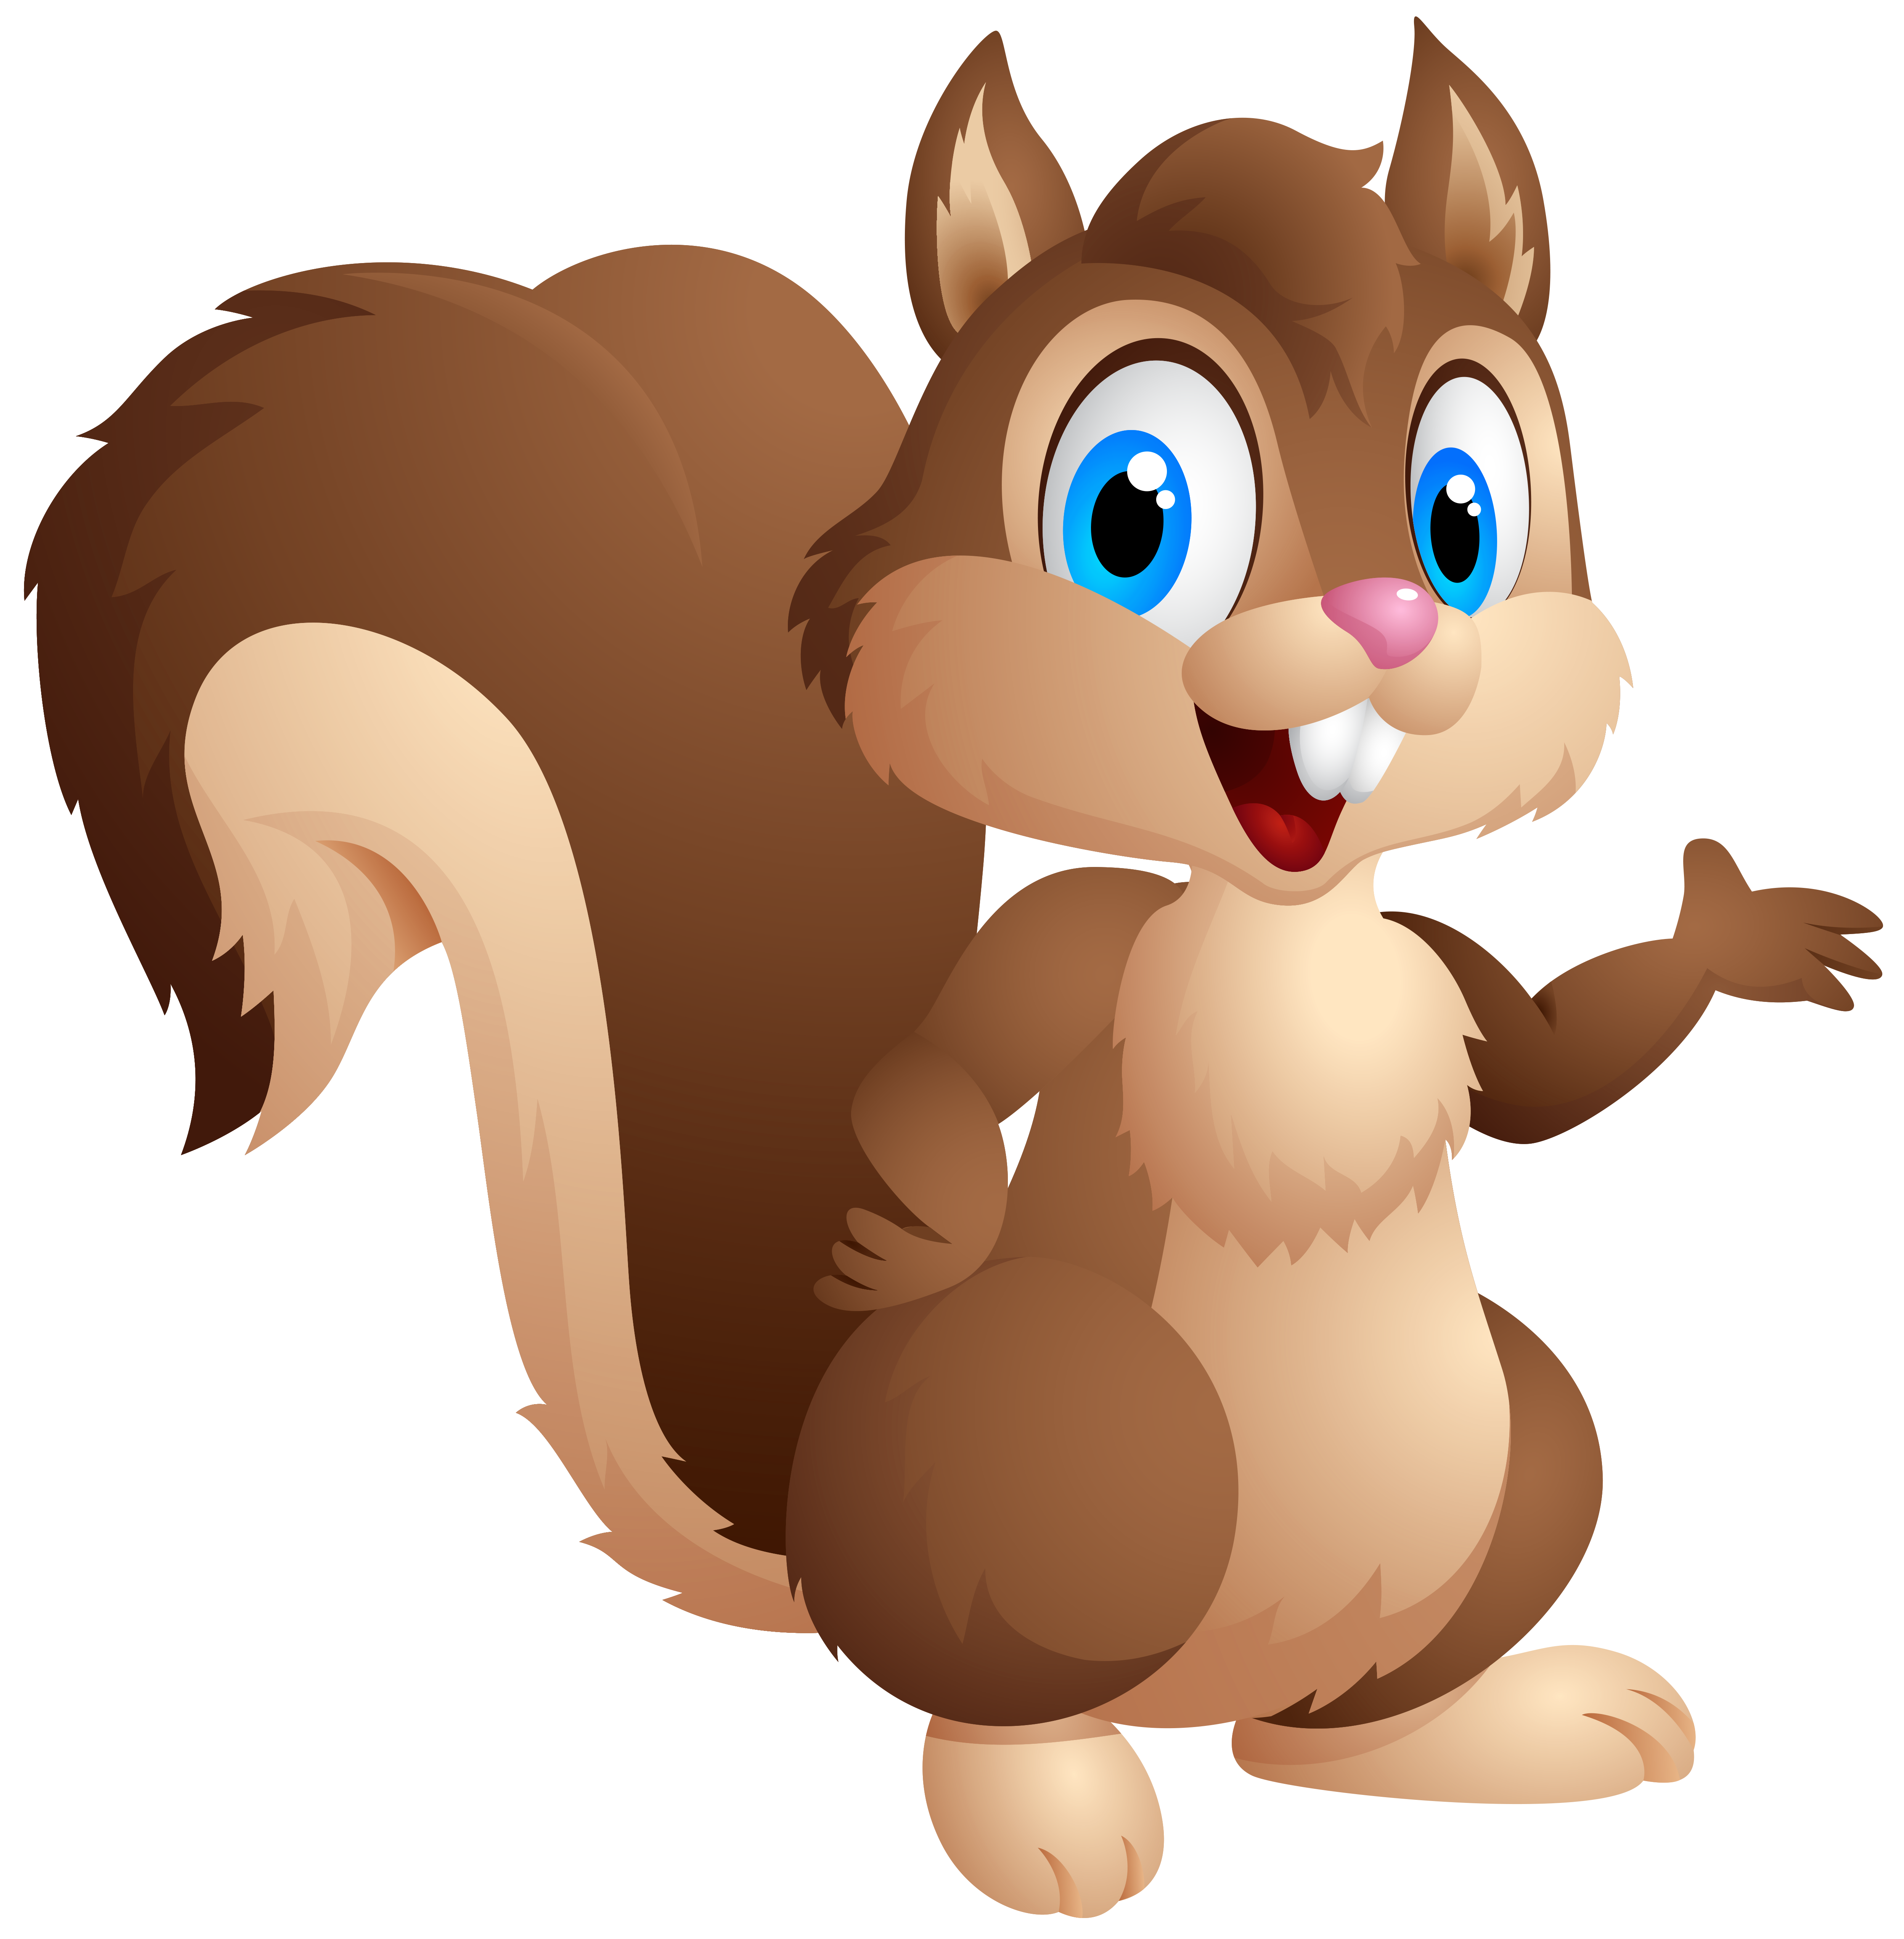 Free chipmunk clipart graphic library download Chipmunk clipart 7 squirrel clipart free clip art images clipartwiz ... graphic library download